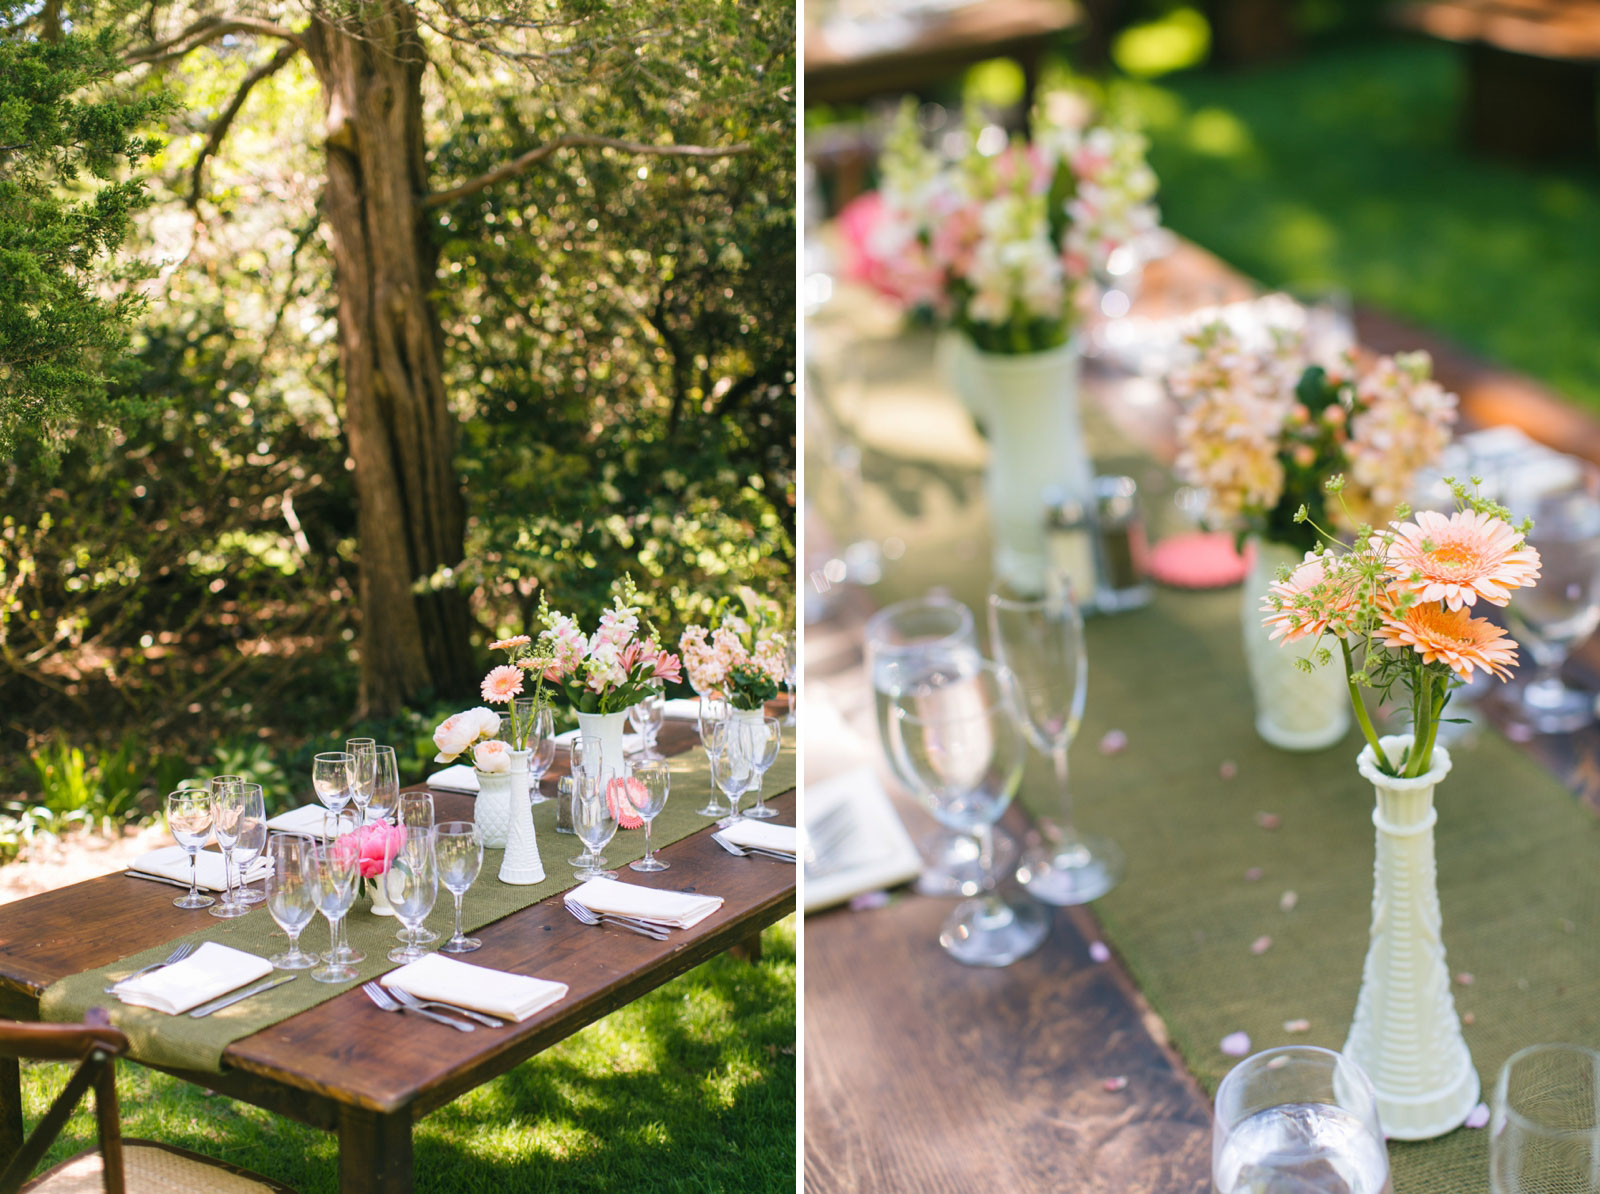 rustic tablescape decor with salmon pink and light peach florals in antique white glass bud vases